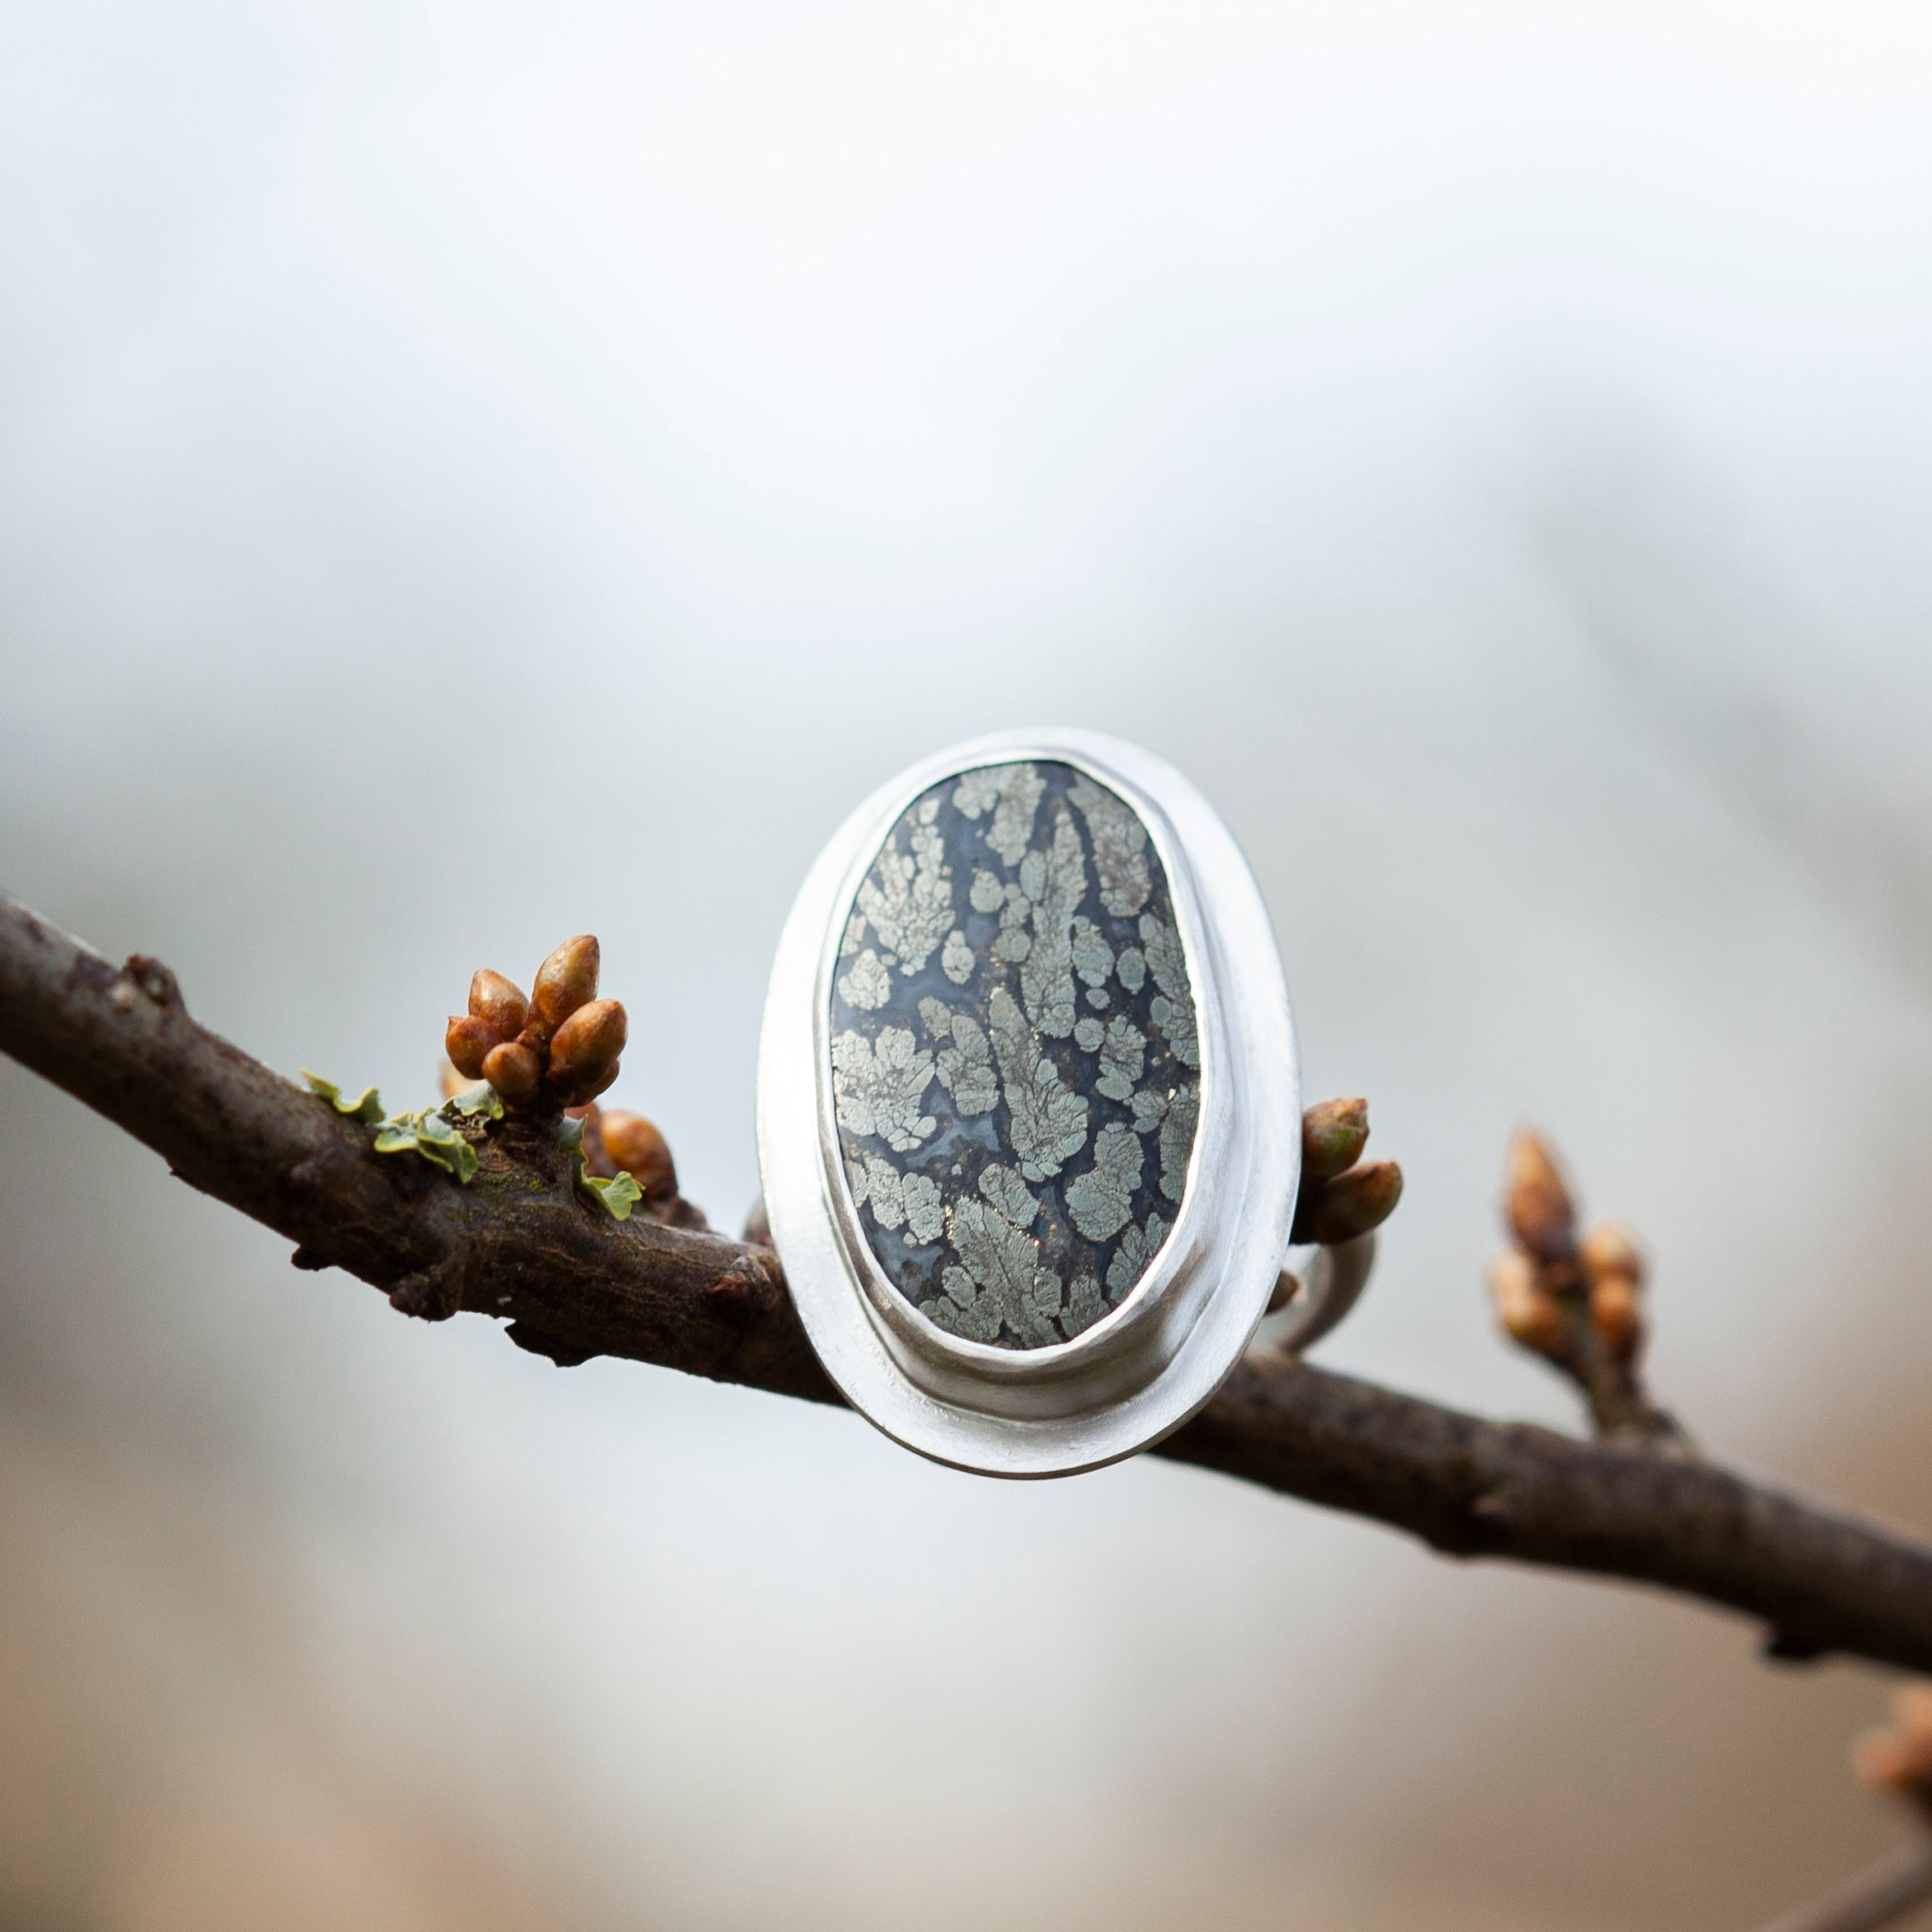 OOAK • Size FR 54 ~ US 7 : Sena ring with pyrite agate (ready-to-ship)